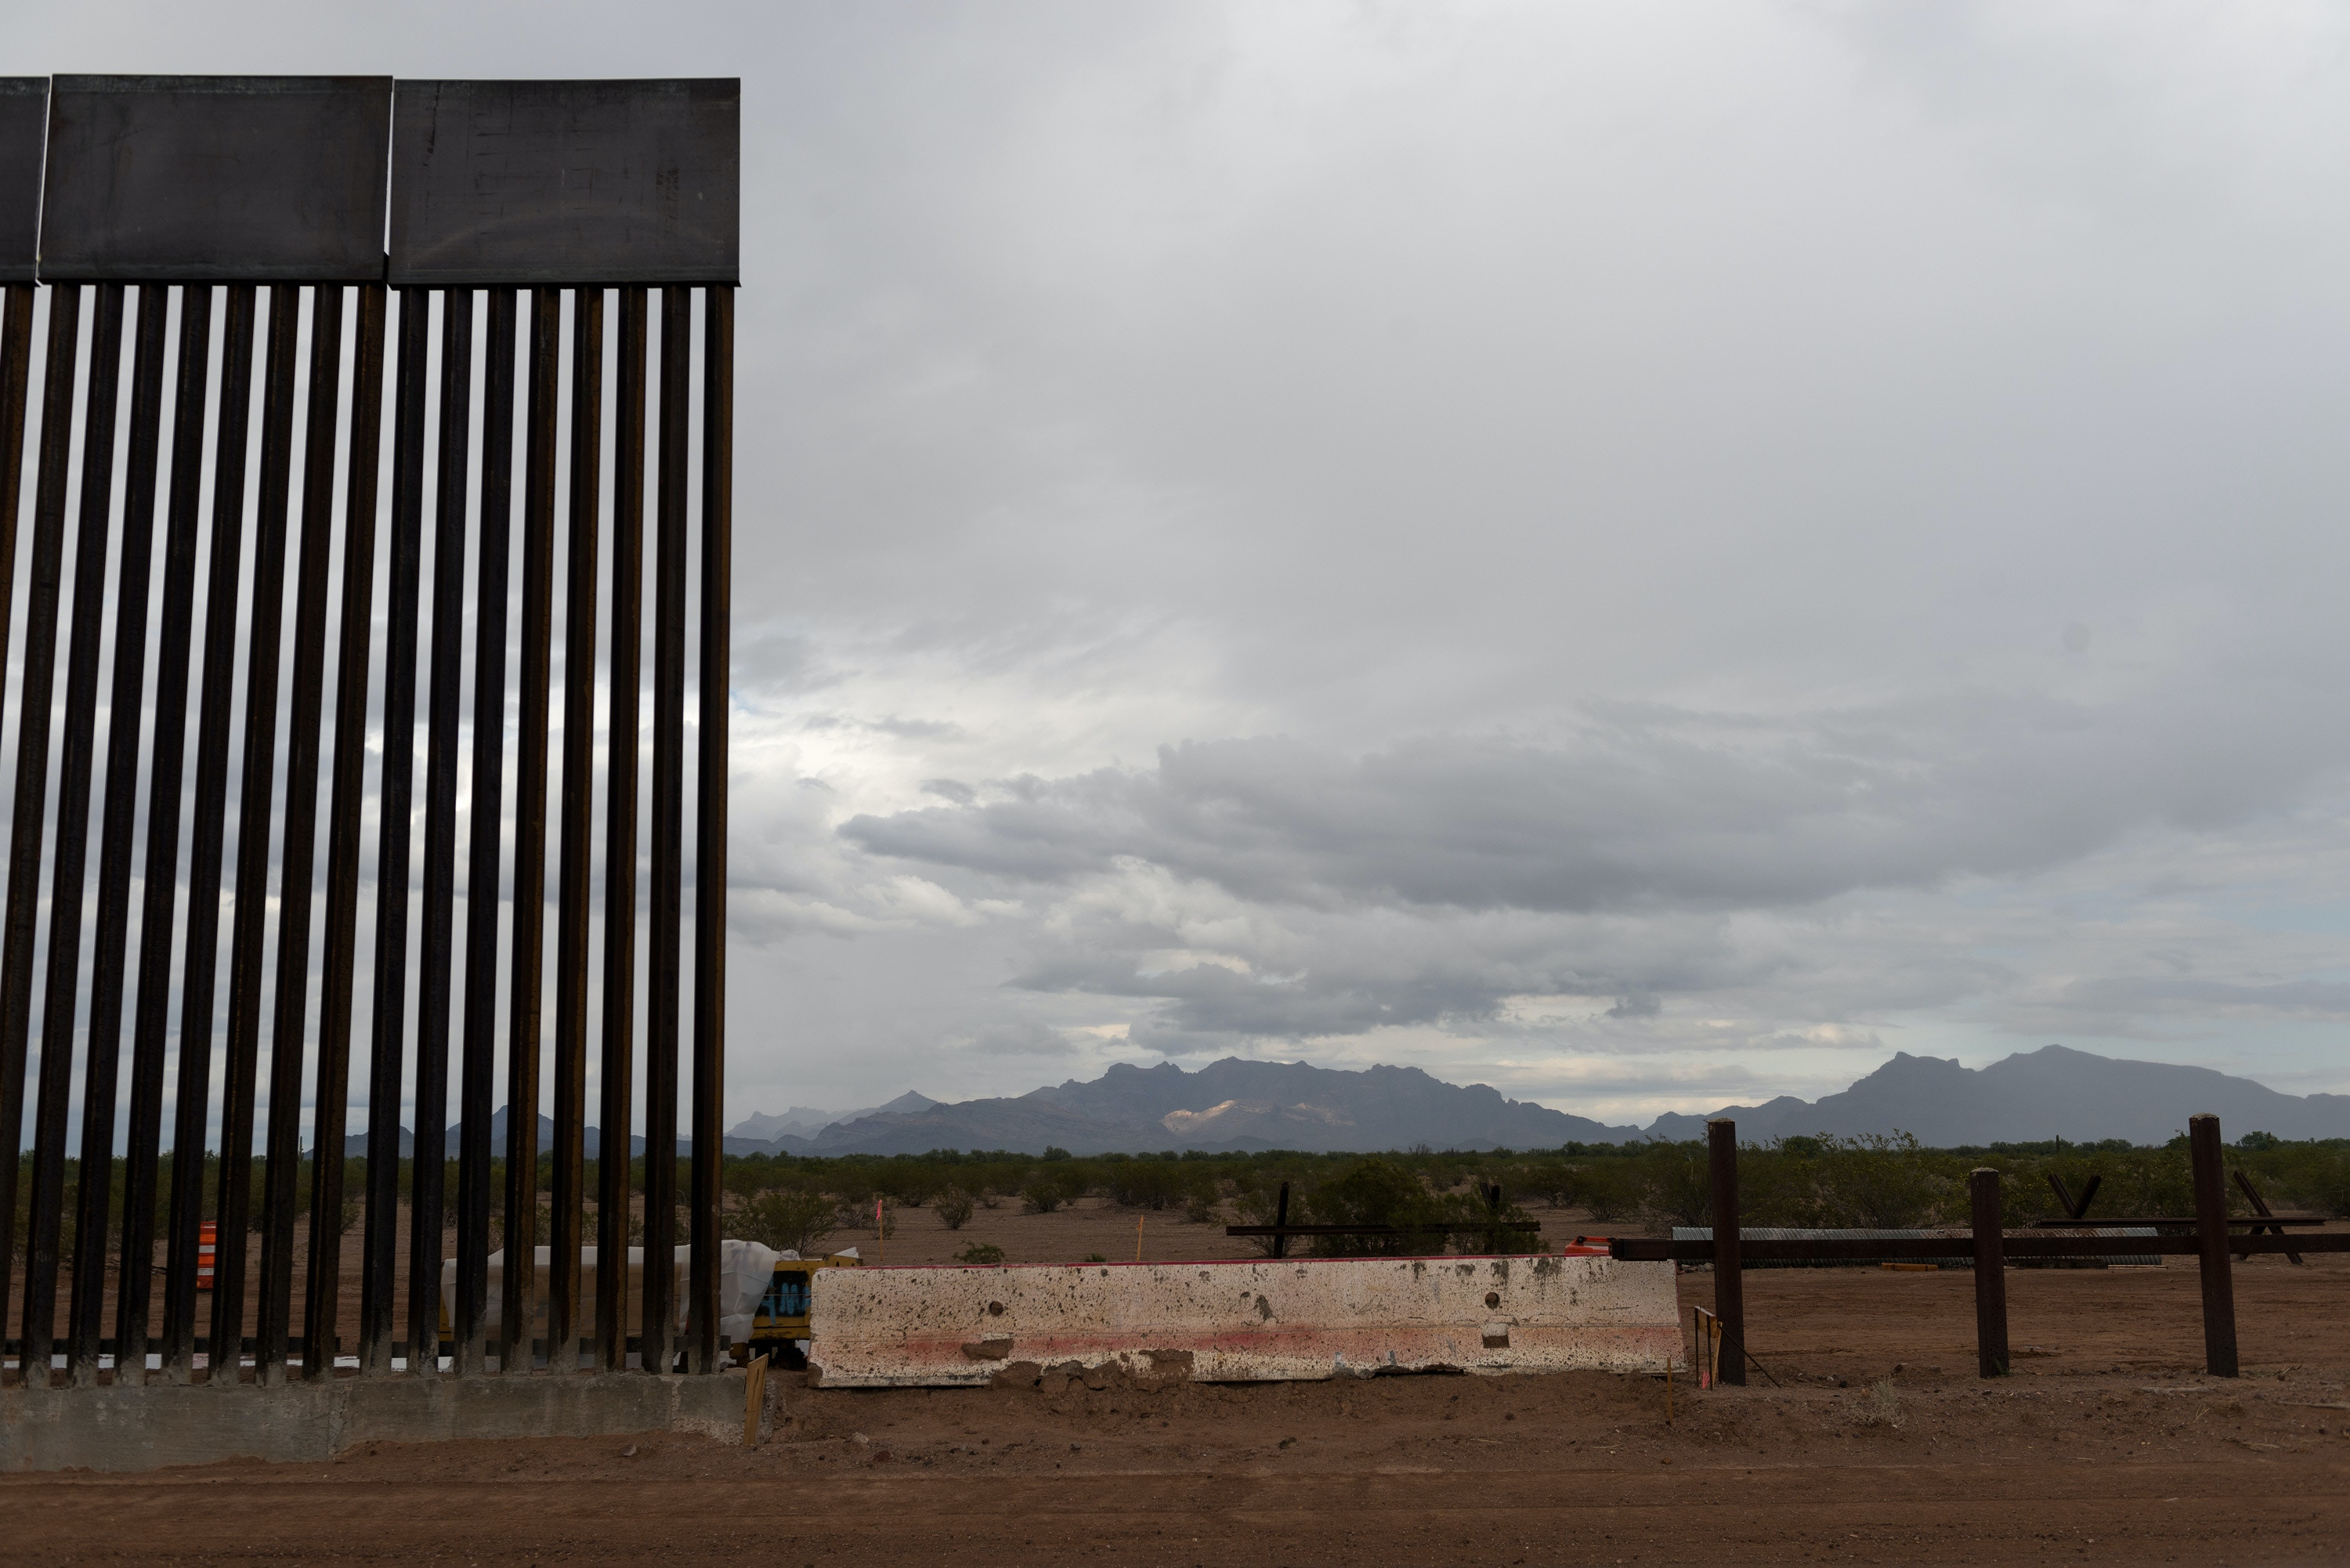 Lukeville, Ariz. September 26, 2019: A section of the new taller barrier cures to the east of Lukeville, Ariz. on Thursday September 26, 2019. (Ash Ponders for The Intercept)